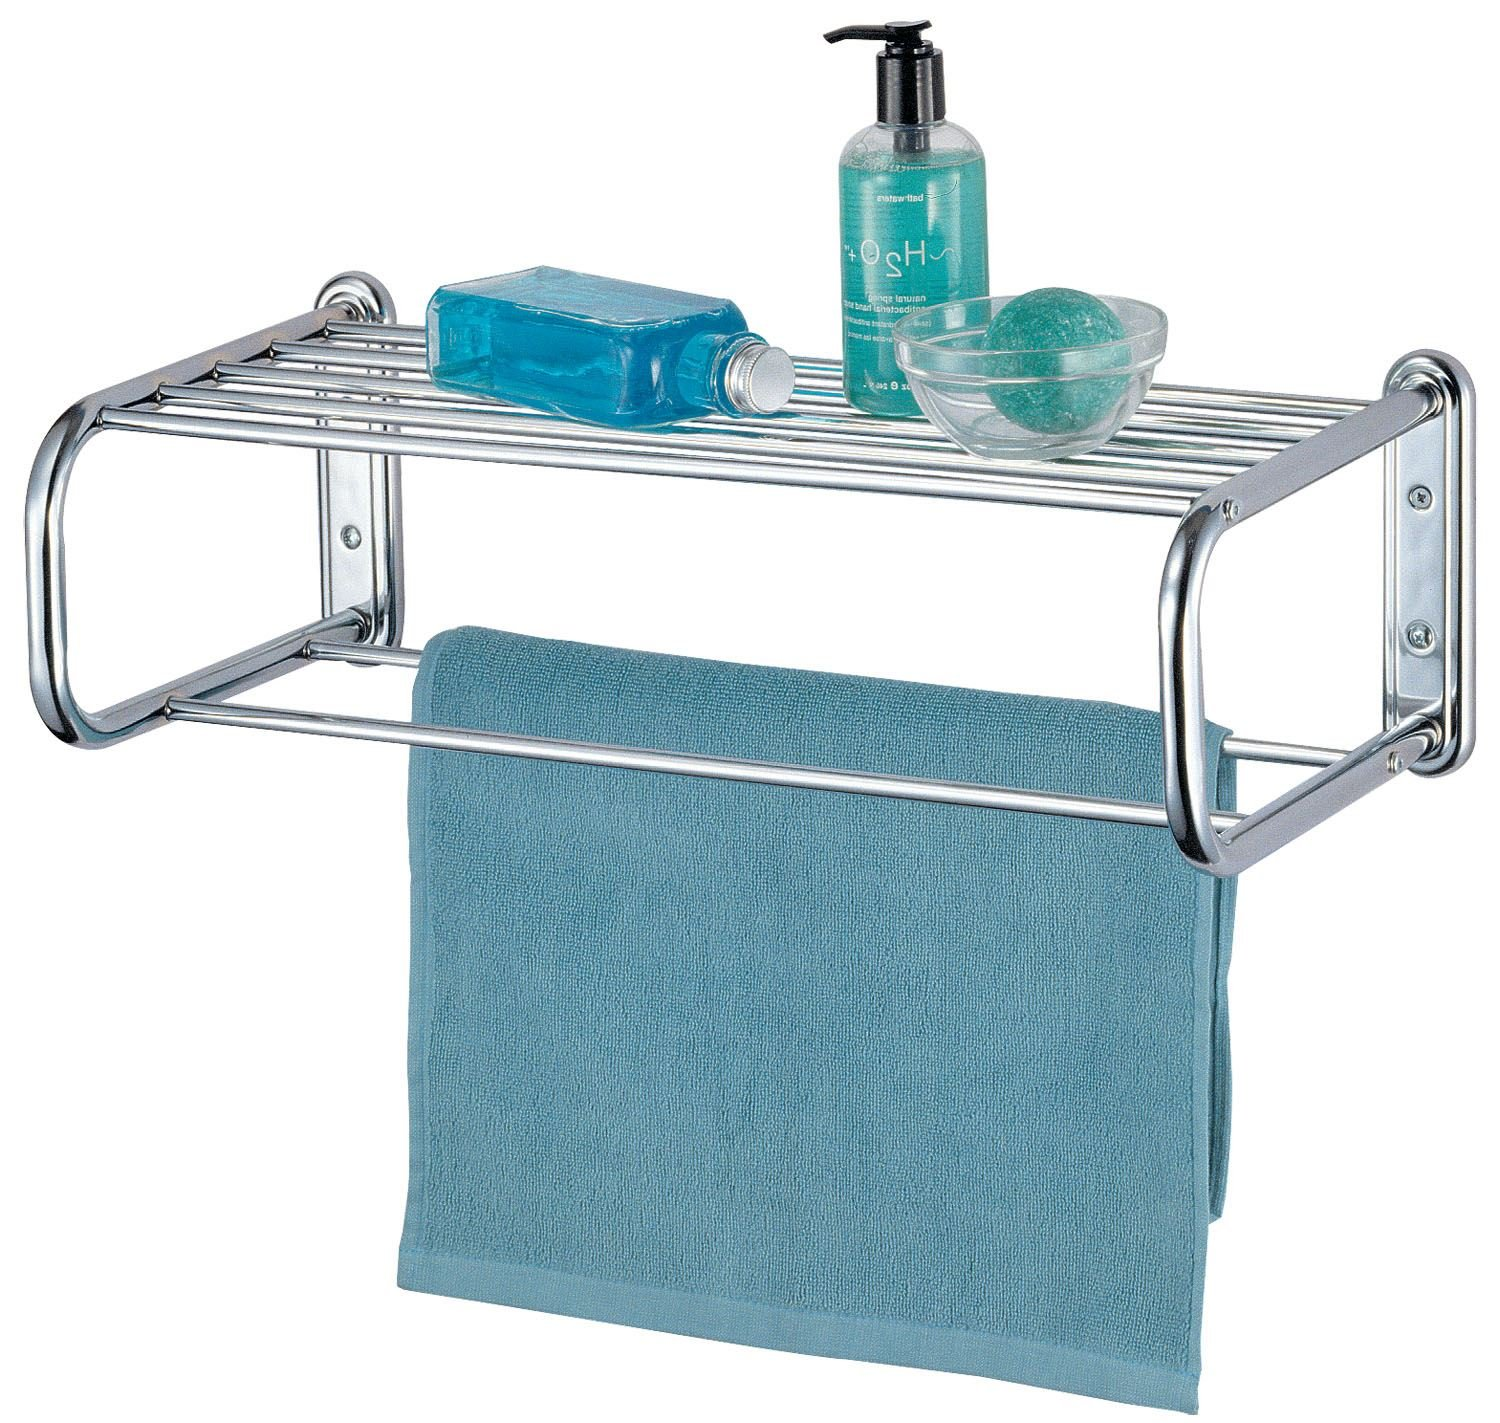 Curved Chrome Wall Mounted Bathroom Towel Holder Shelf Storage Rack ...